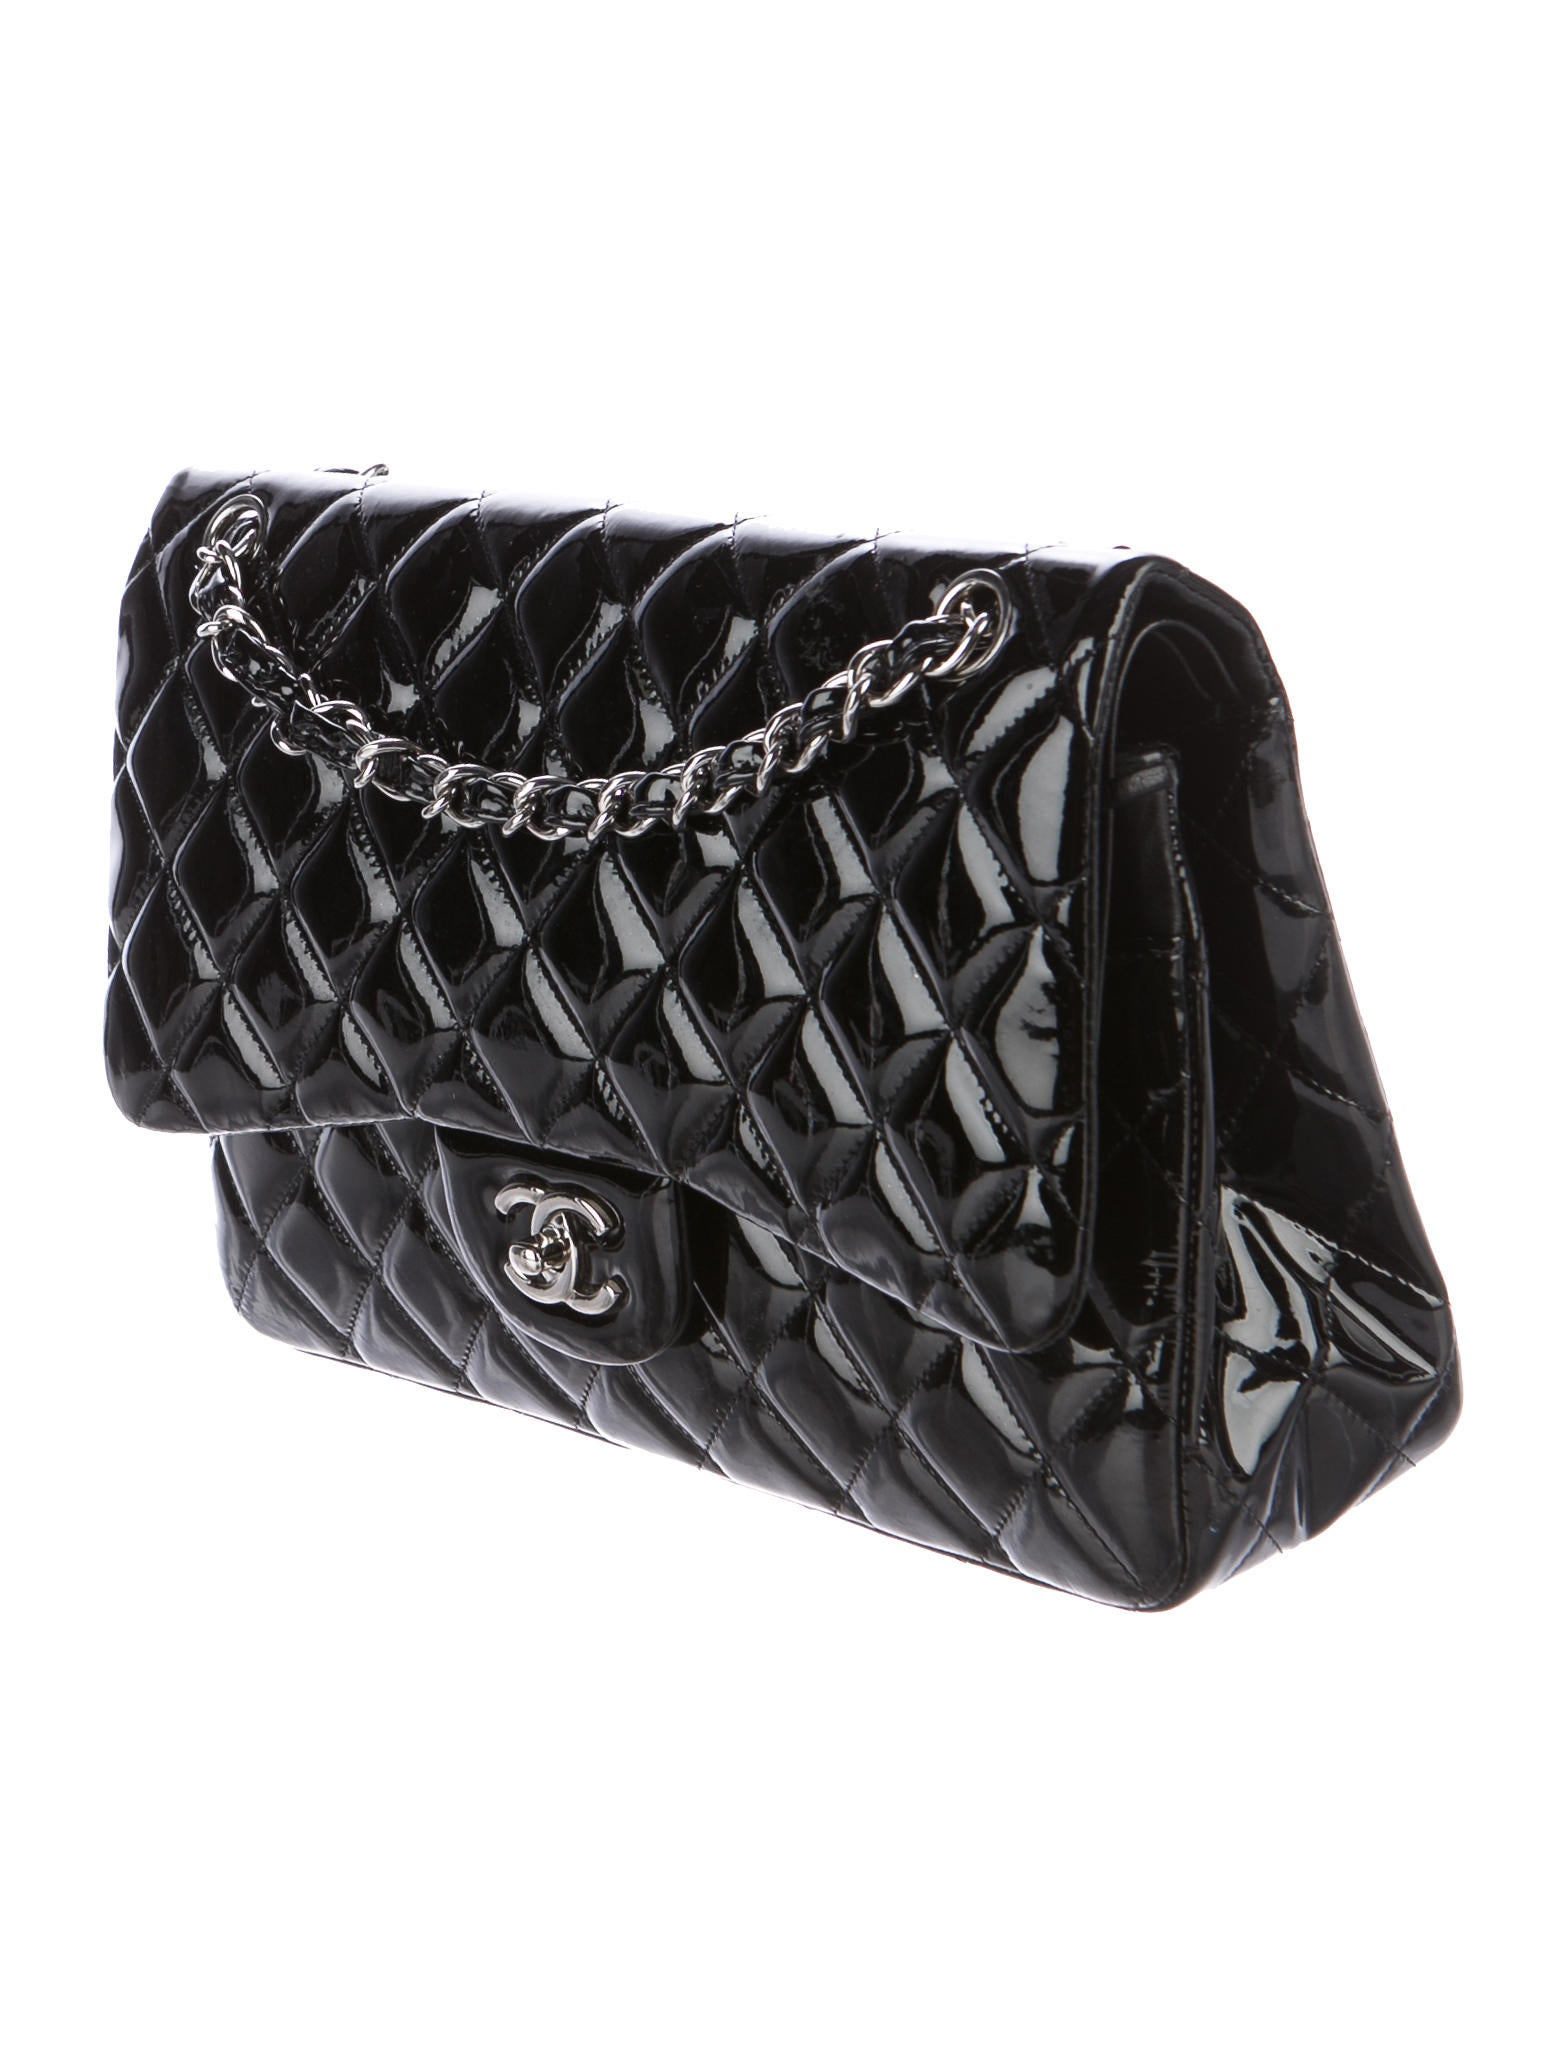 41d2673585e4ee Chanel Classic Jumbo Double Flap Bag For Sale | Stanford Center for ...